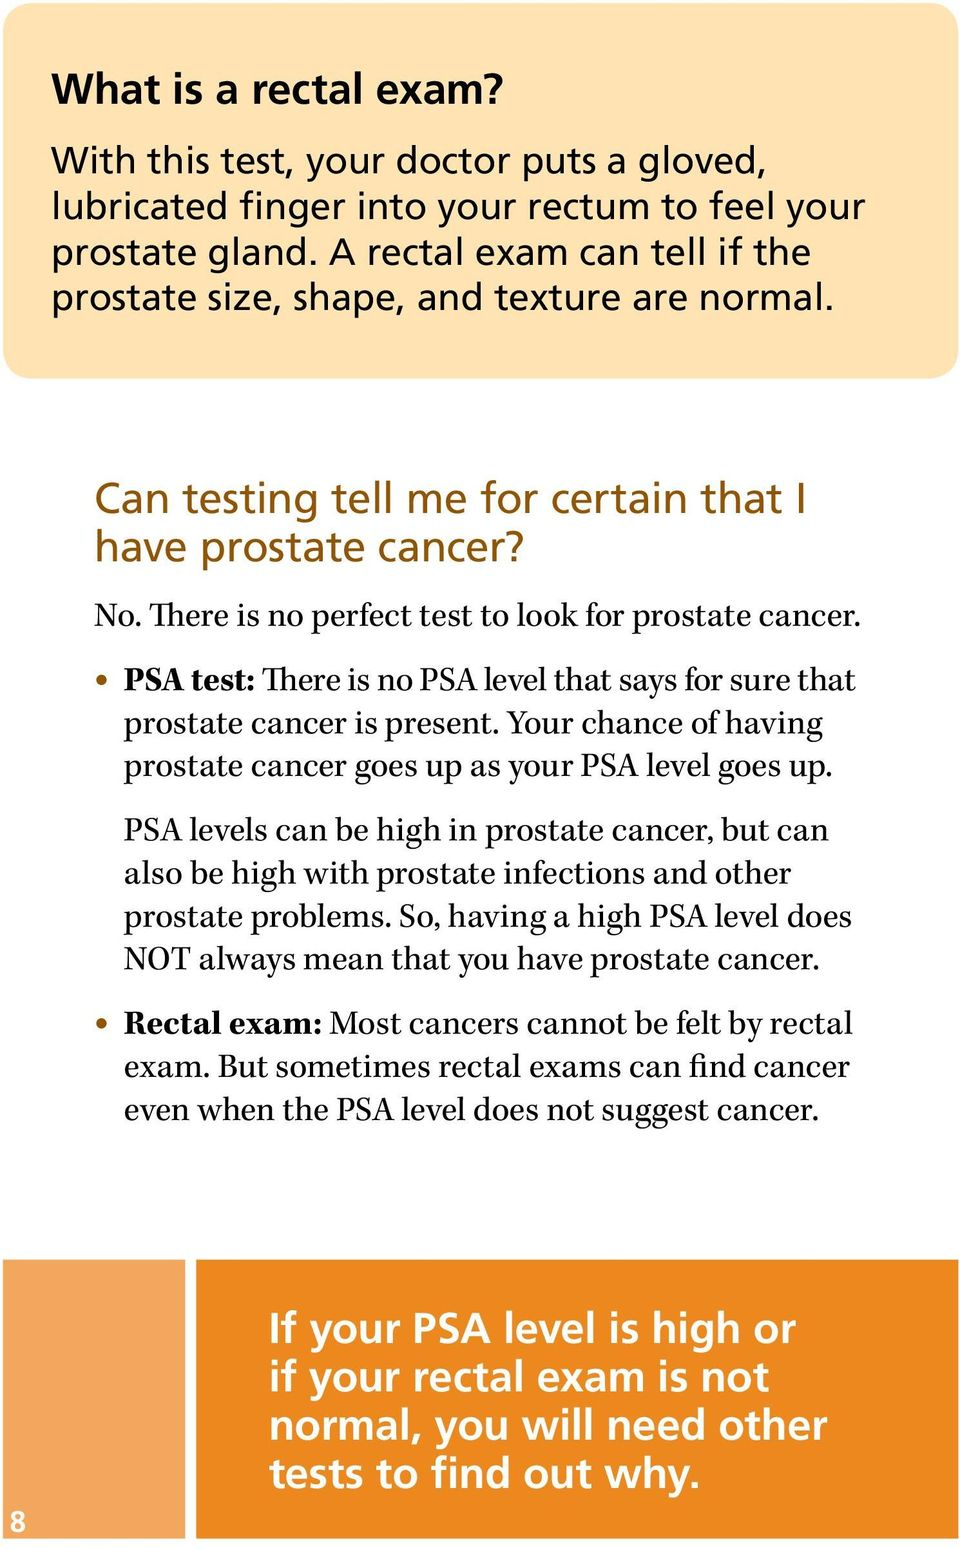 PSA test: There is no PSA level that says for sure that prostate cancer is present. Your chance of having prostate cancer goes up as your PSA level goes up.